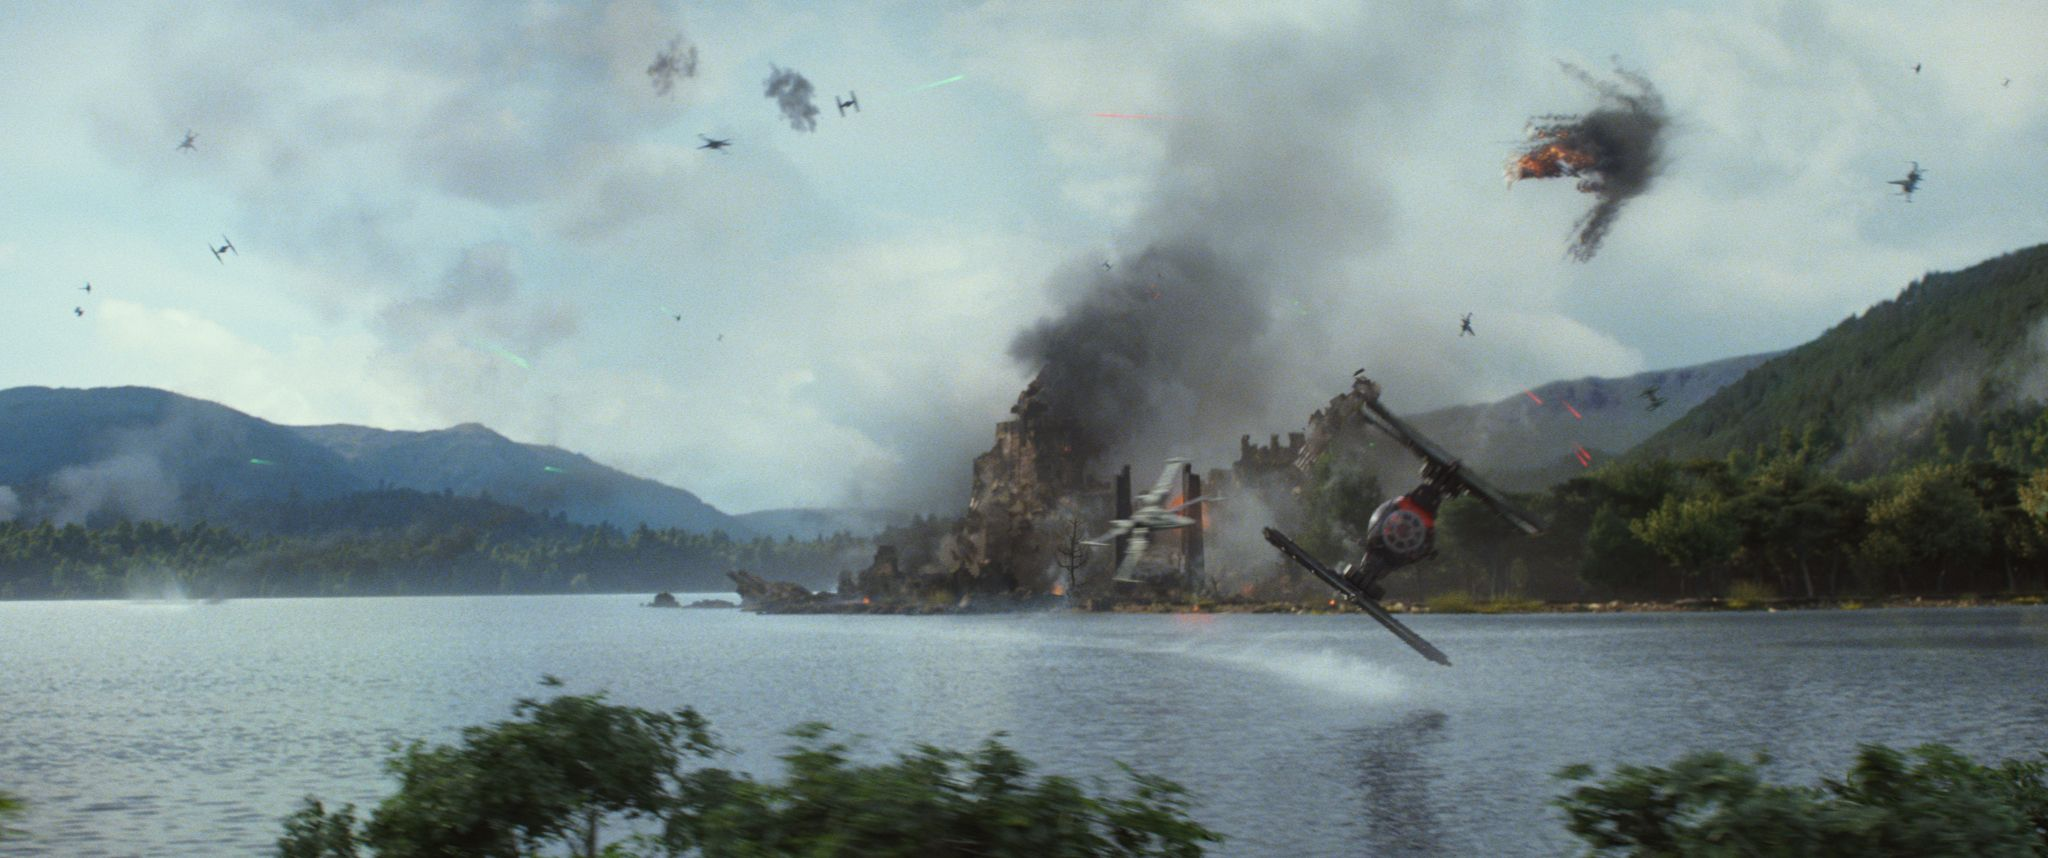 Star wars 7 images are perfect for desktop wallpaper - Star wars the force awakens desktop wallpaper ...